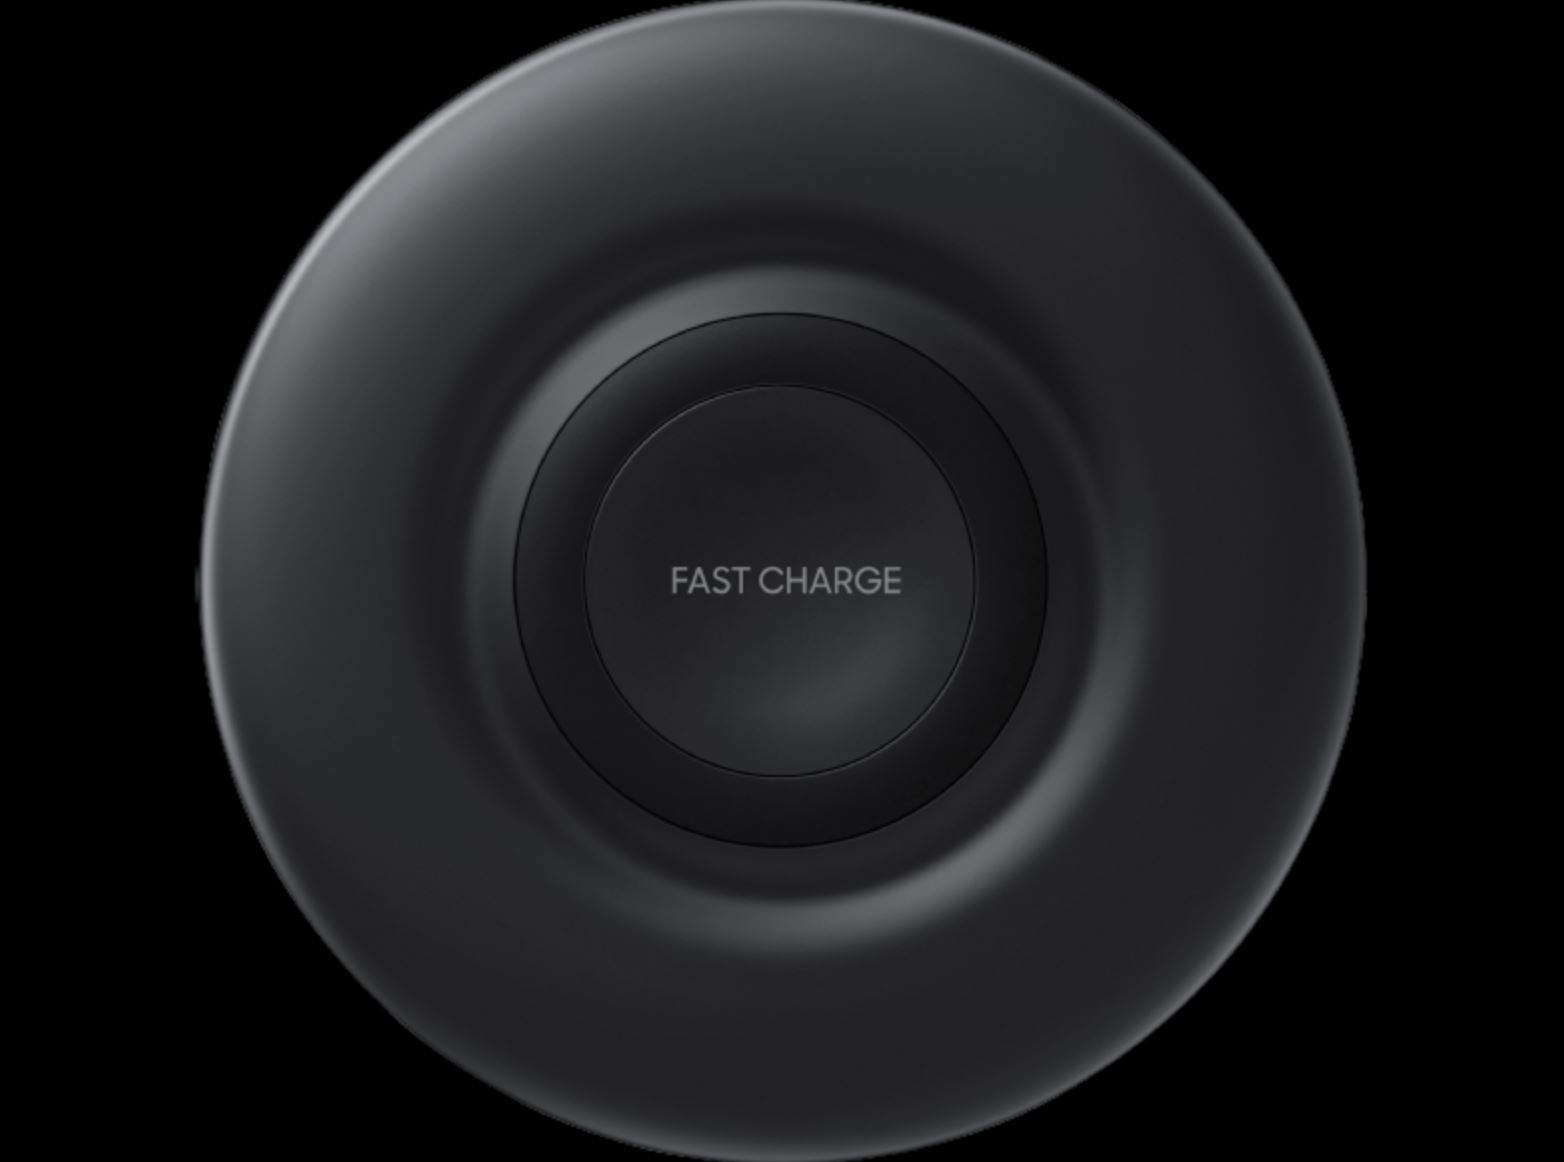 EP P3100 Samsung Wireless Charger Duo Roland Quandt July 28 18 2